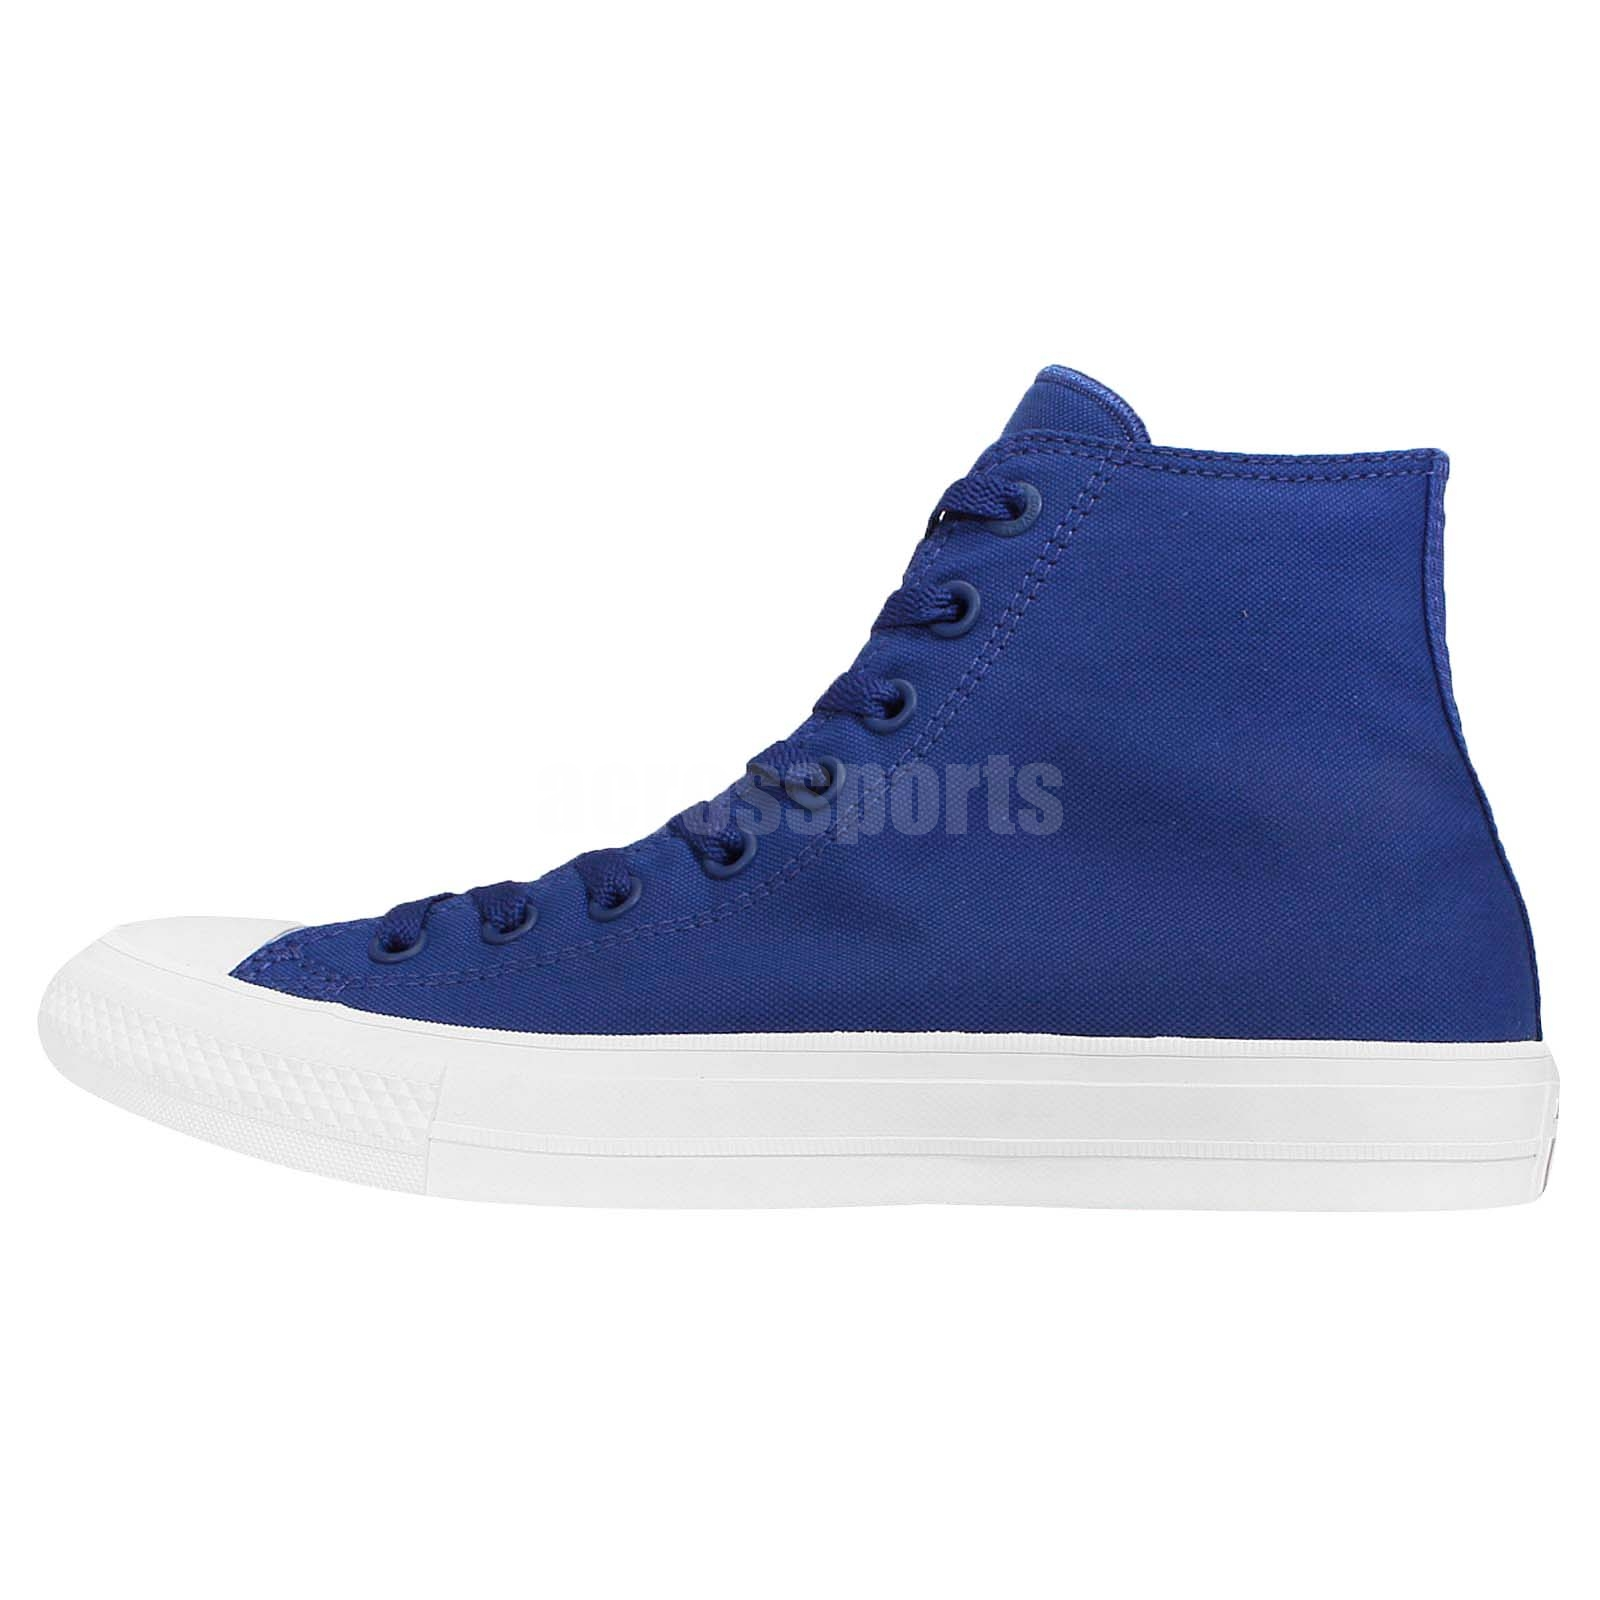 79e595b88c2e Converse Chuck Taylor All Star II 2 Lunarlon Blue White Men Shoe Sneaker  150146C